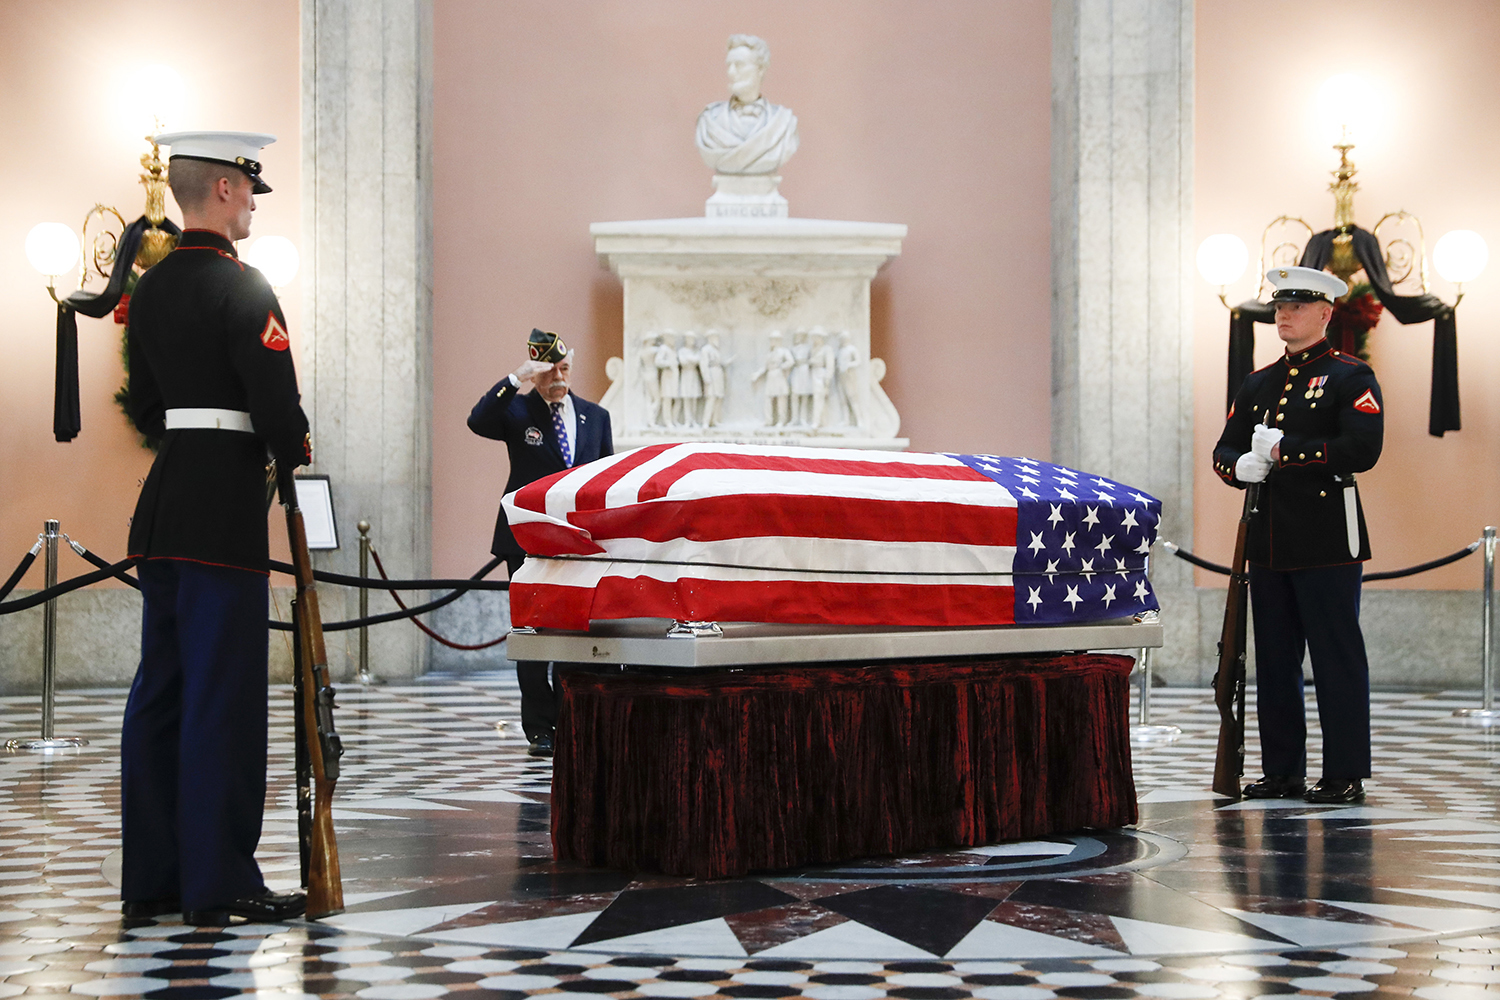 Marines stand guard at the casket of the John Glenn as he lies in repose, Friday, Dec. 16, 2016, in Columbus, Ohio. Glenn's home state and the nation began saying goodbye to the famed astronaut as he lies in state at Ohio's capitol building. Glenn, 95, the first American to orbit Earth, died last week. (AP Photo/John Minchillo)